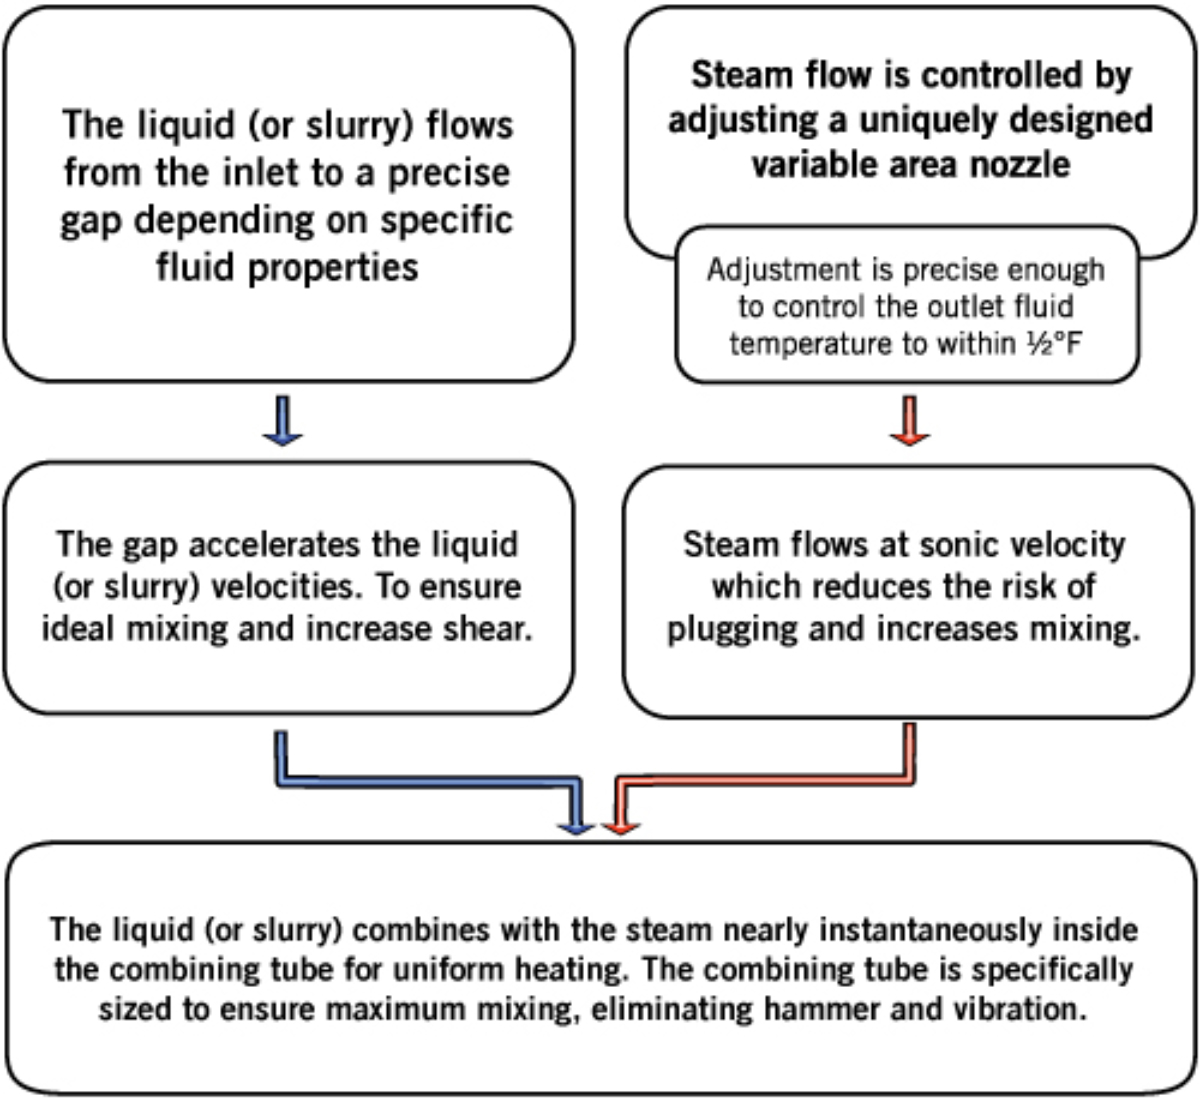 How the Sanitary Hydroheater works - direct steam injection